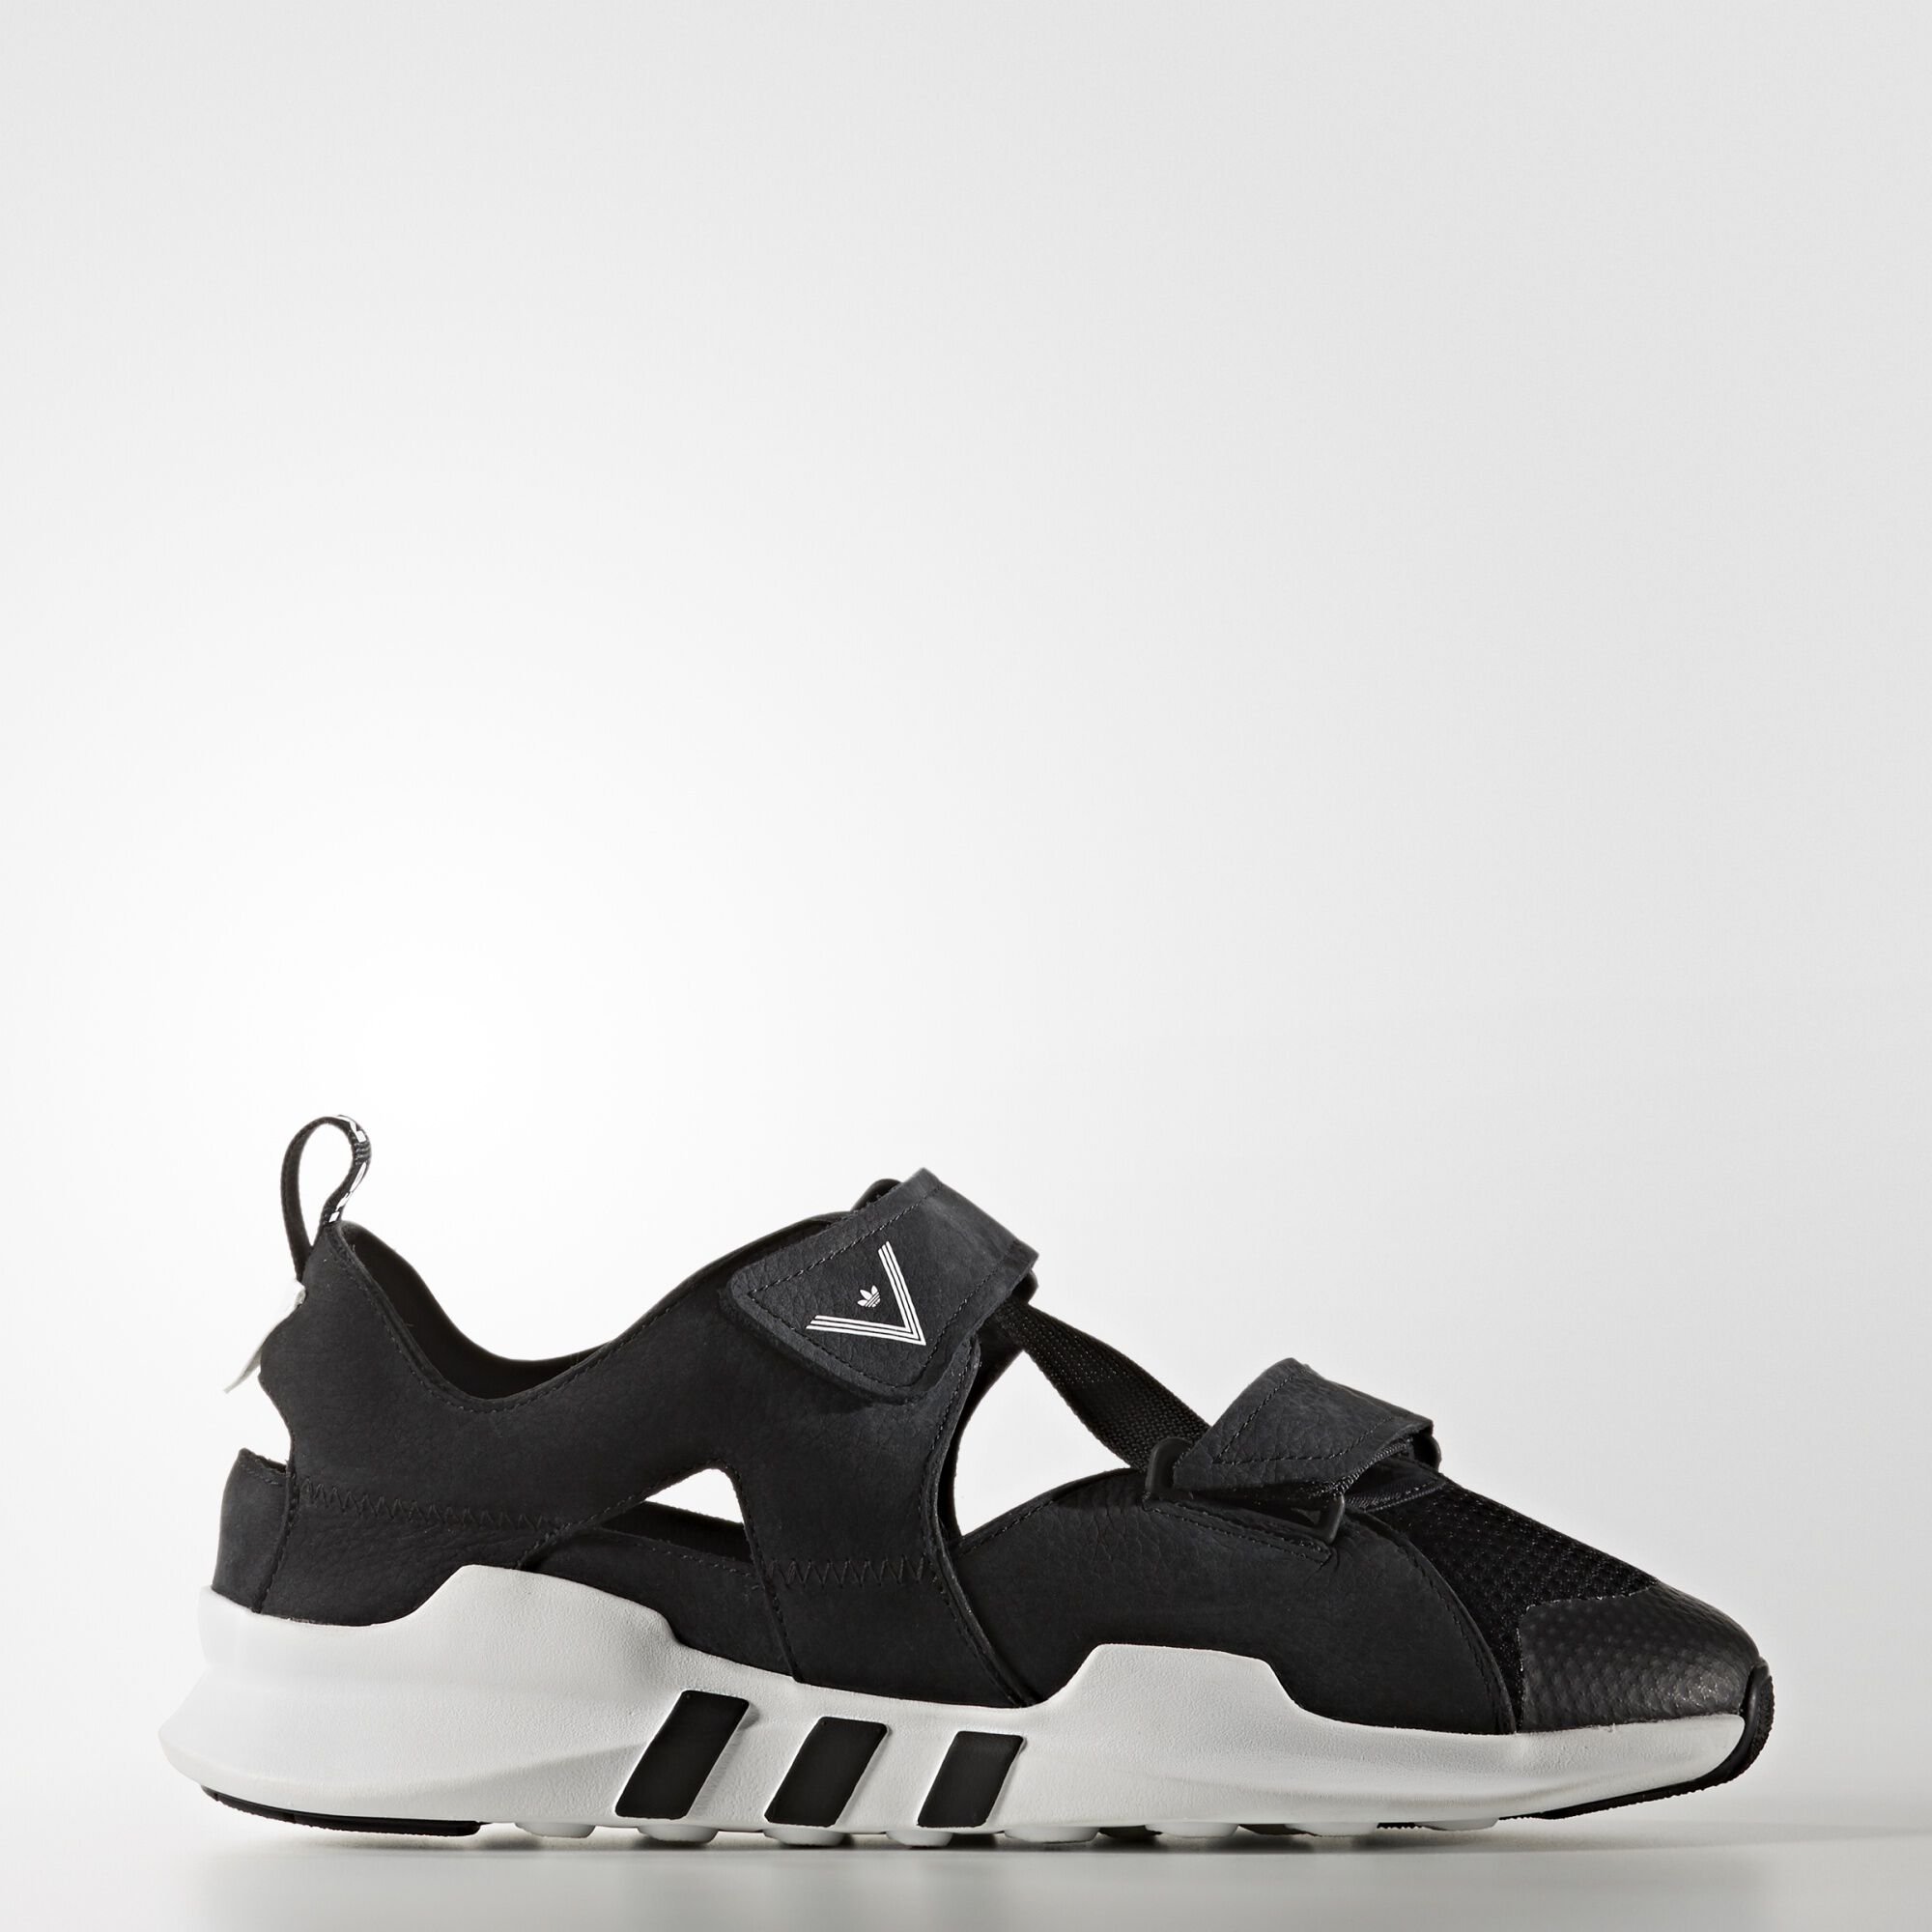 Men's Adidas White Mountaineering Adv Sandals Black TlK1cF3uJ5